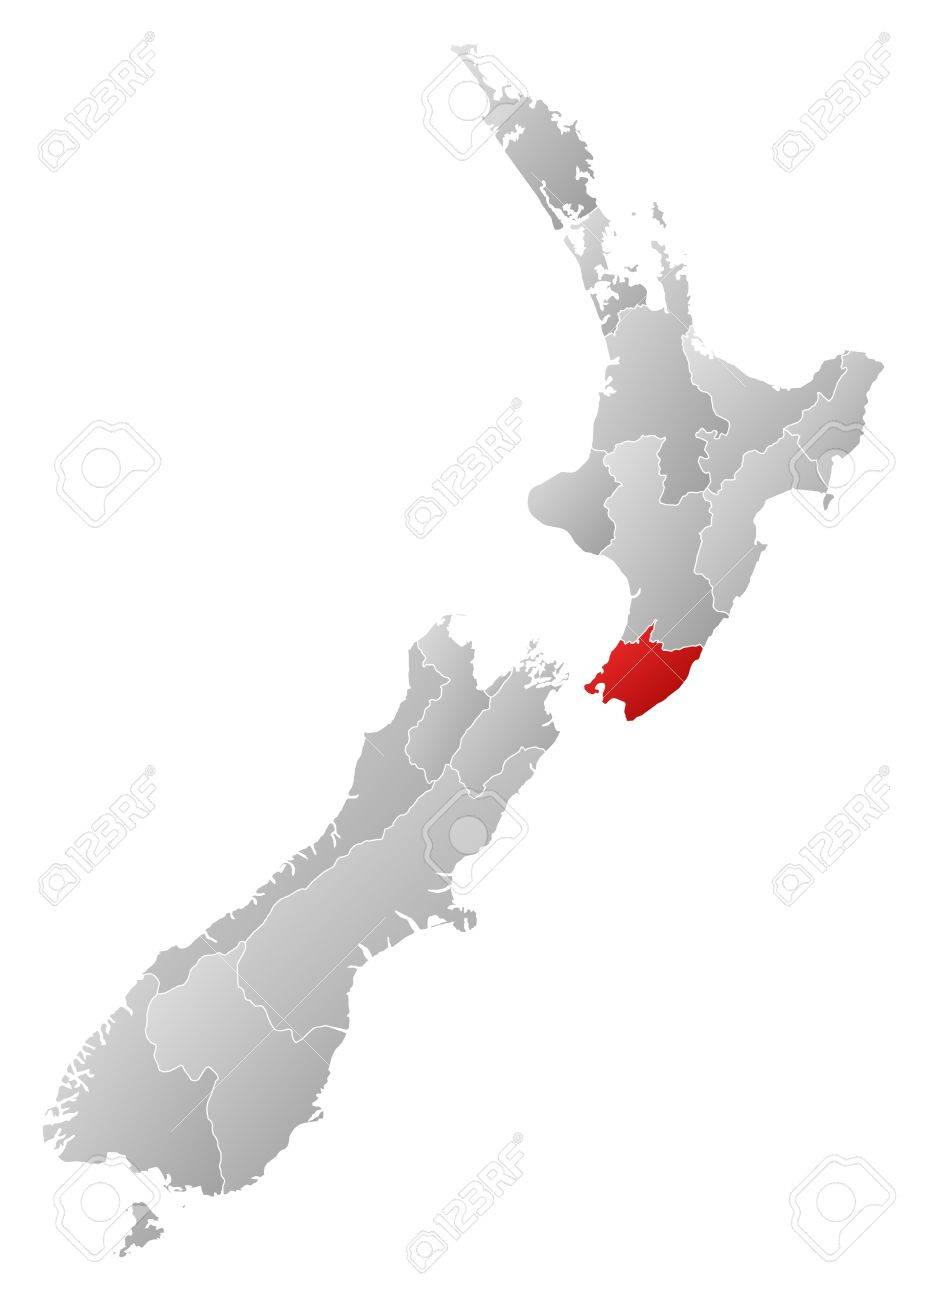 Map Of New Zealand Wellington.Political Map Of New Zealand With The Several Regions Where Wellington